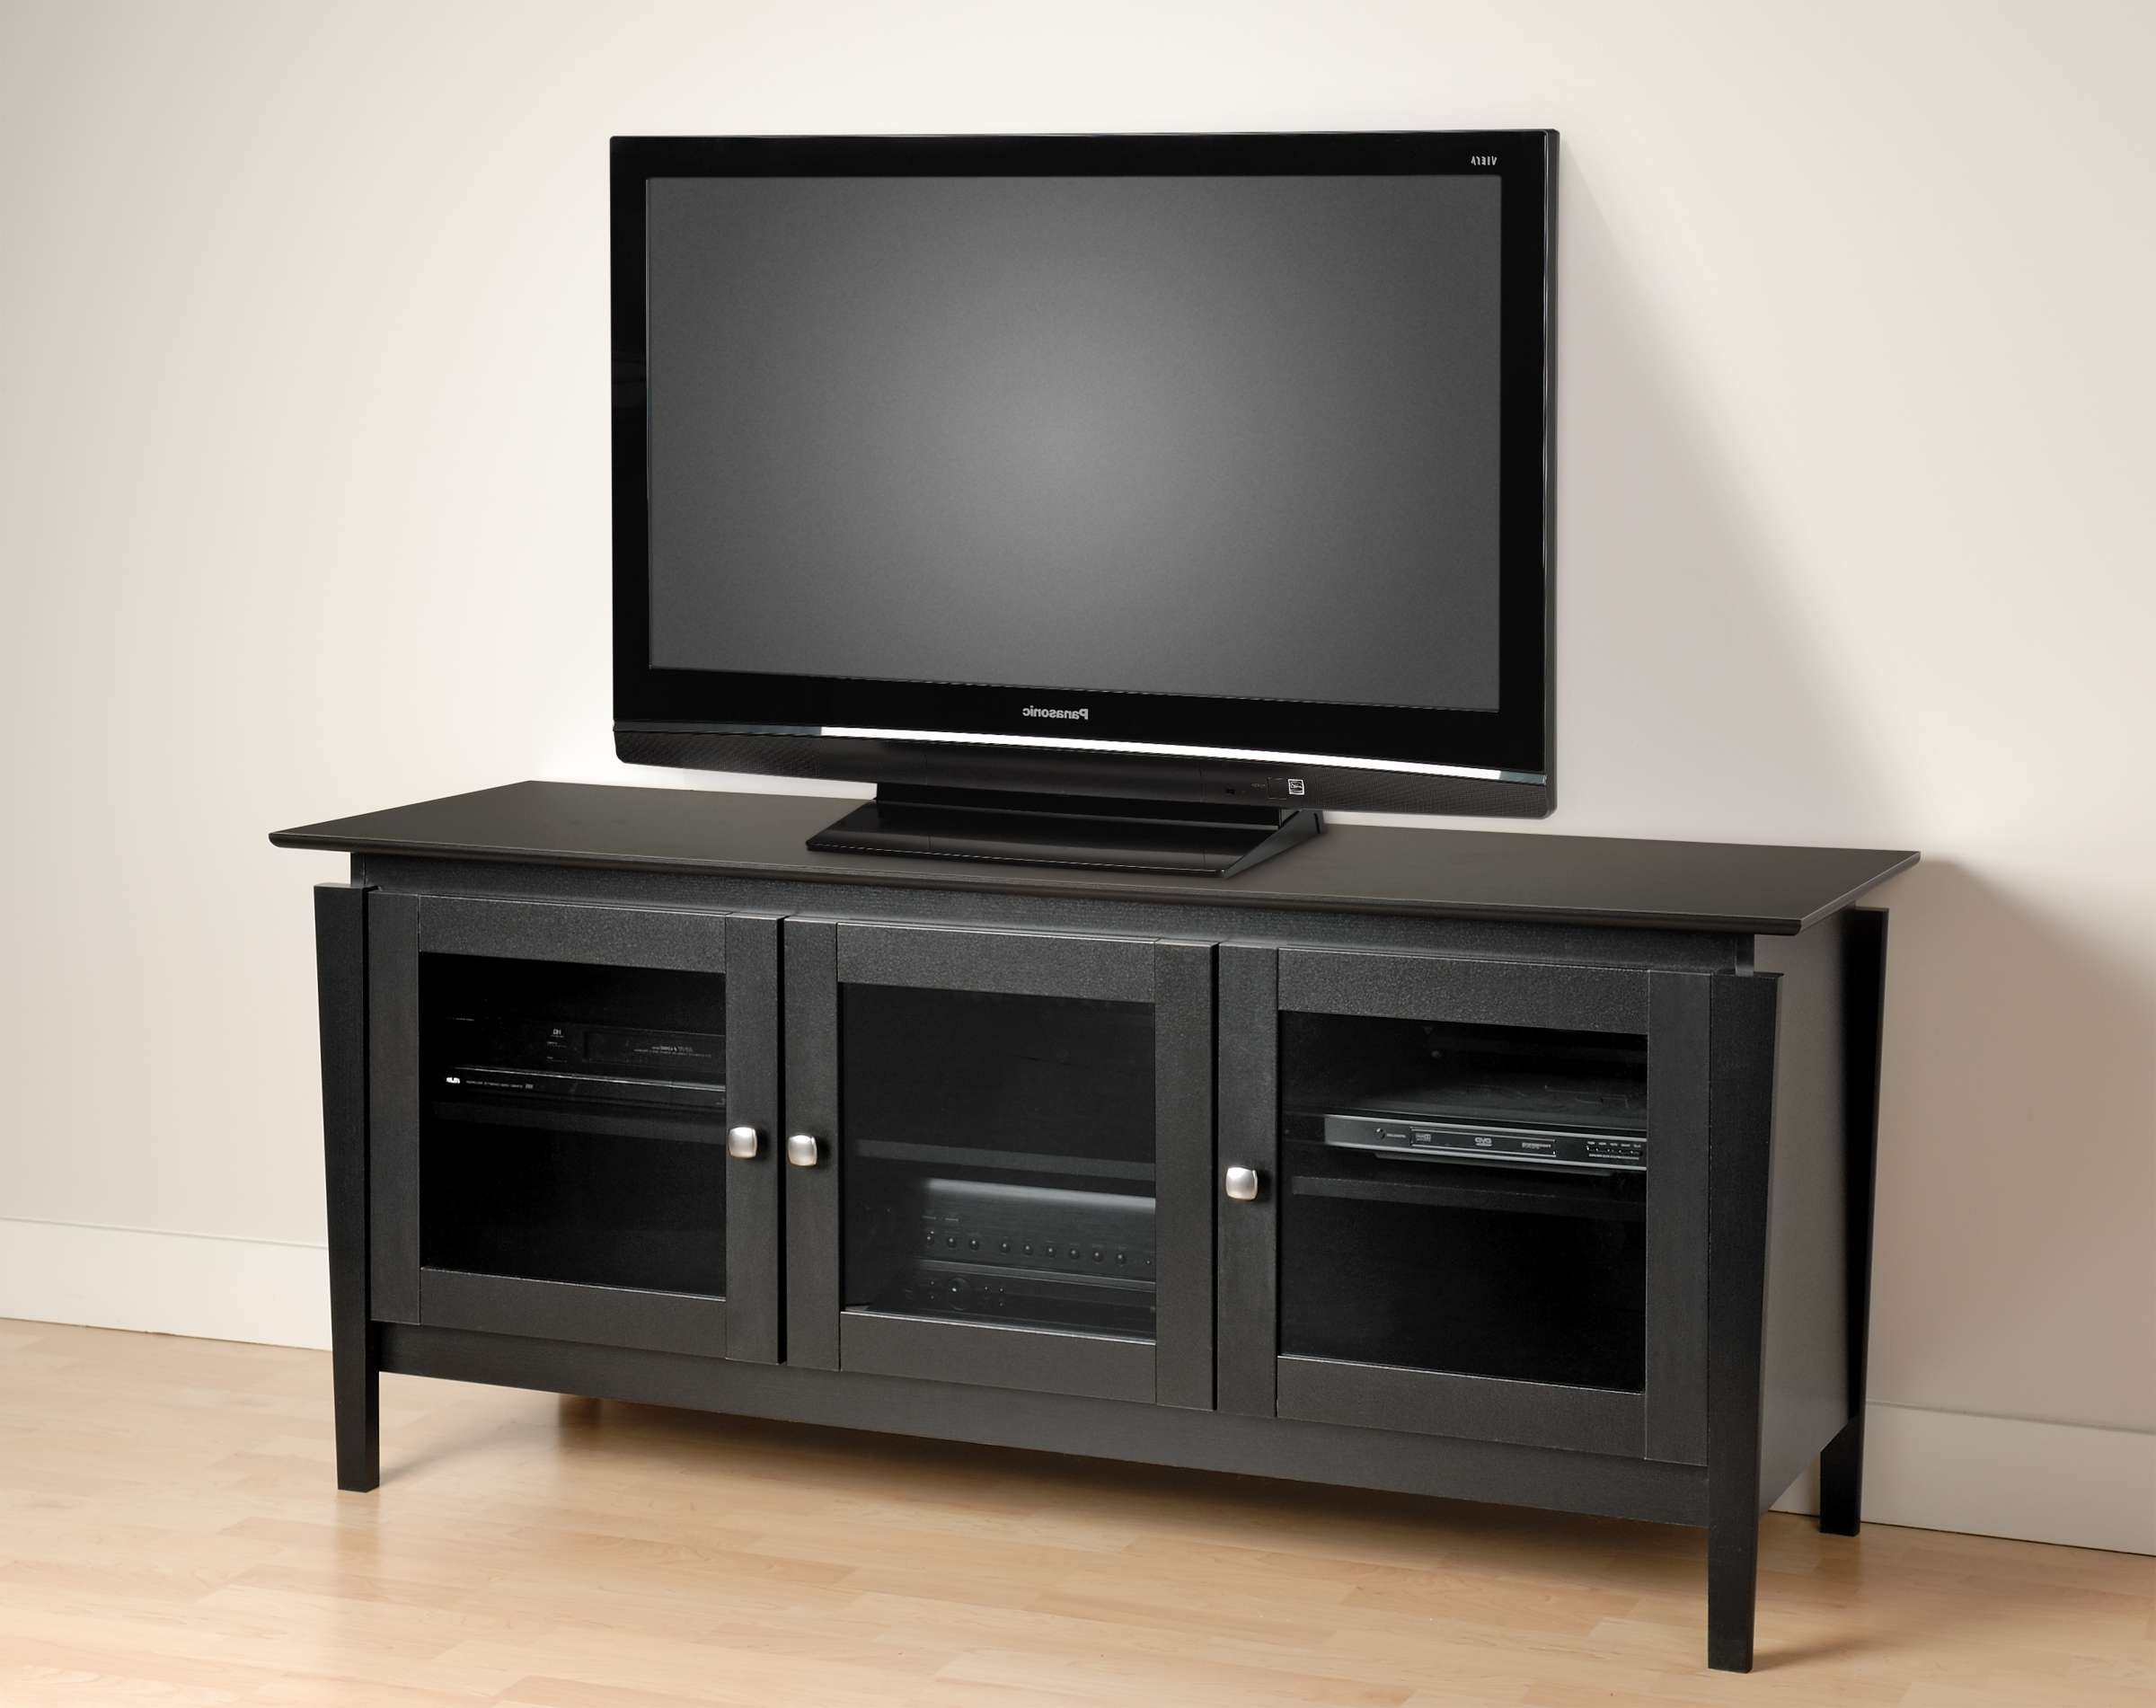 Modern Black Stained Oak Wood Media Cabinet With Glass Doors Of Pertaining To Wooden Tv Cabinets With Glass Doors (View 7 of 20)